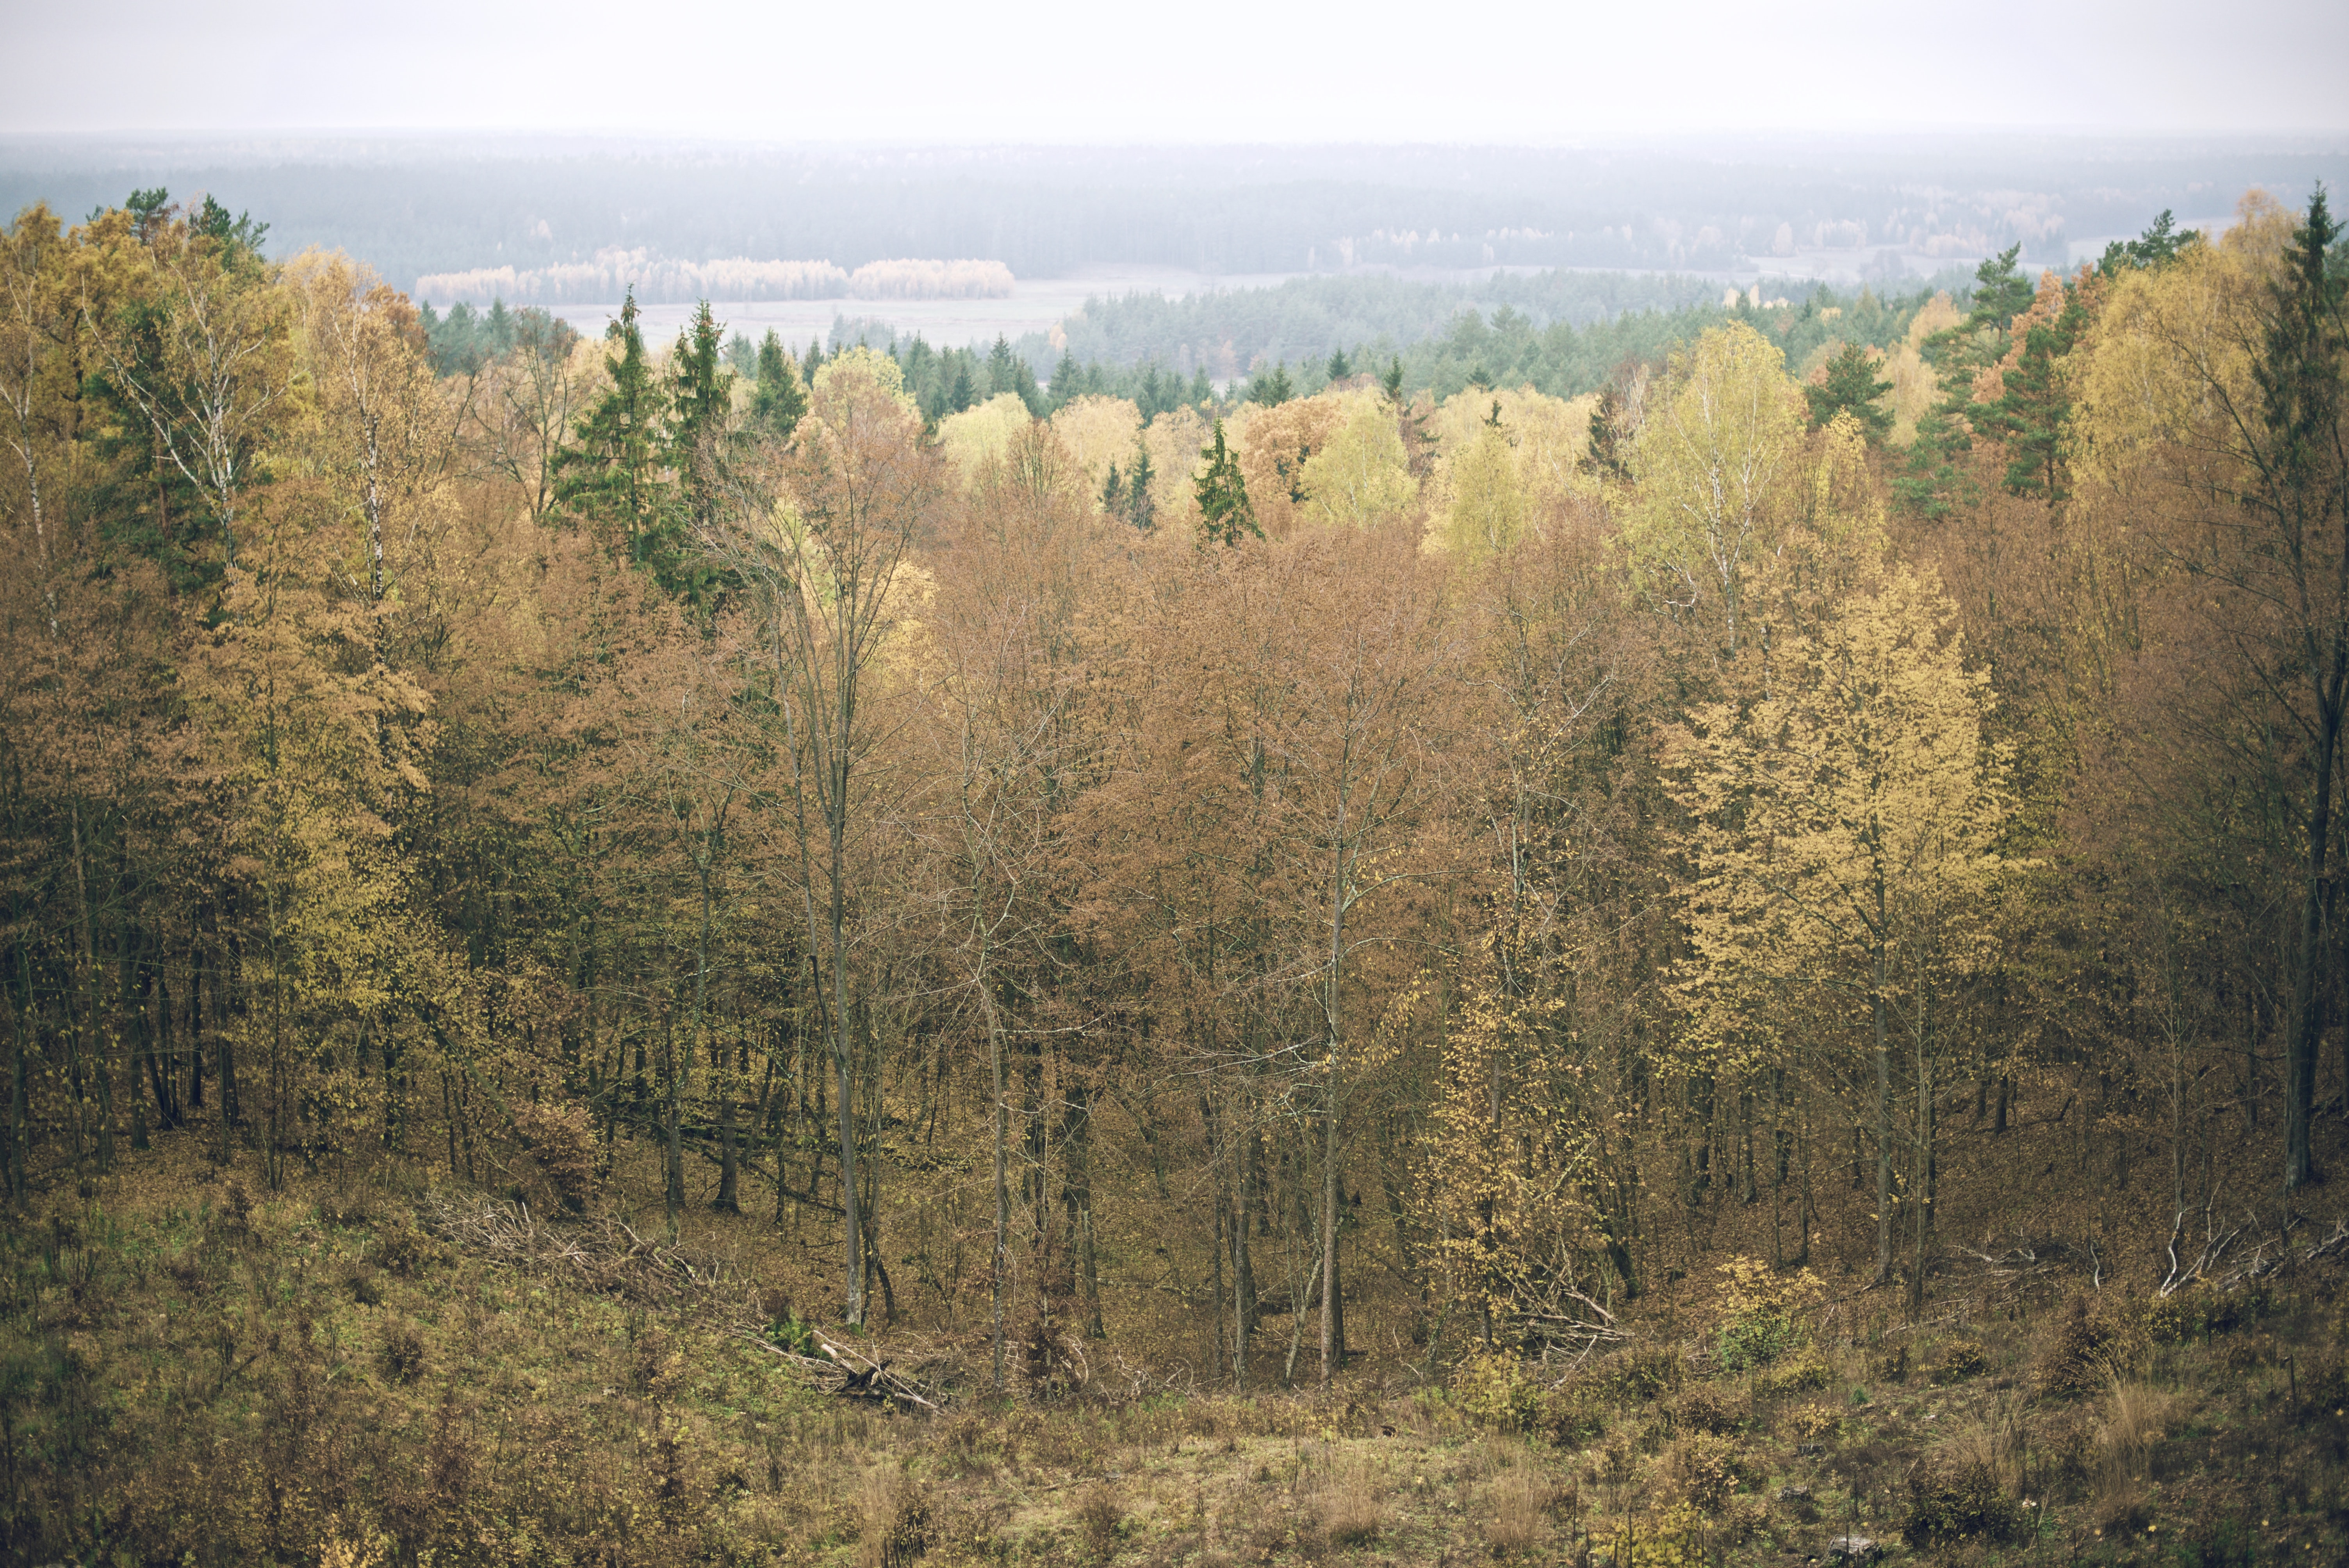 A massive forest made up of tall green trees.